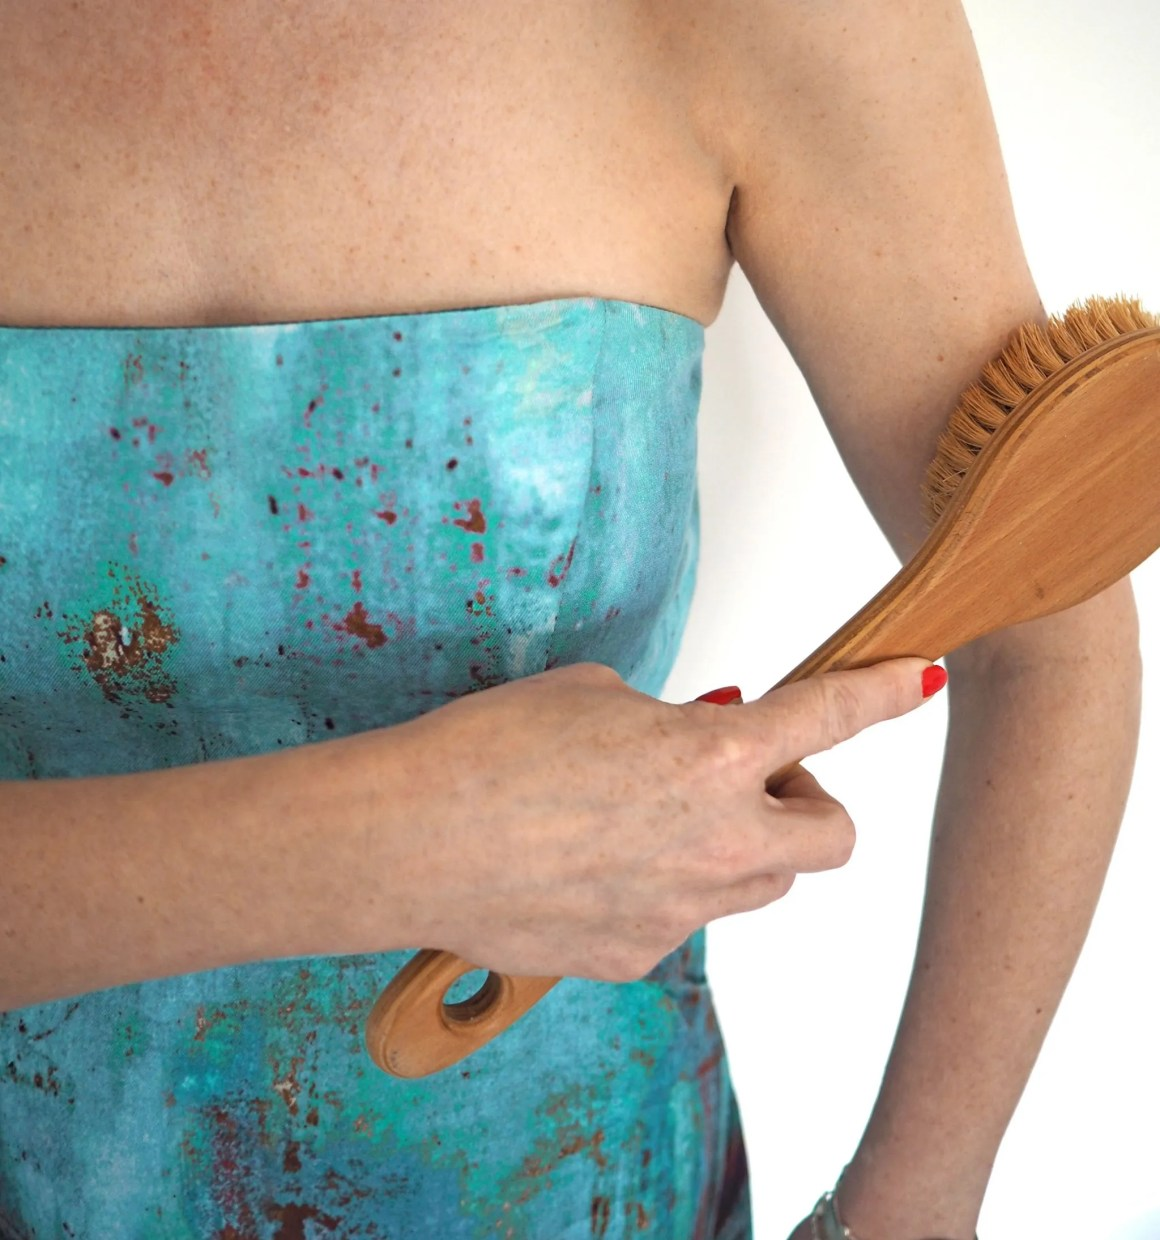 body brushing arms